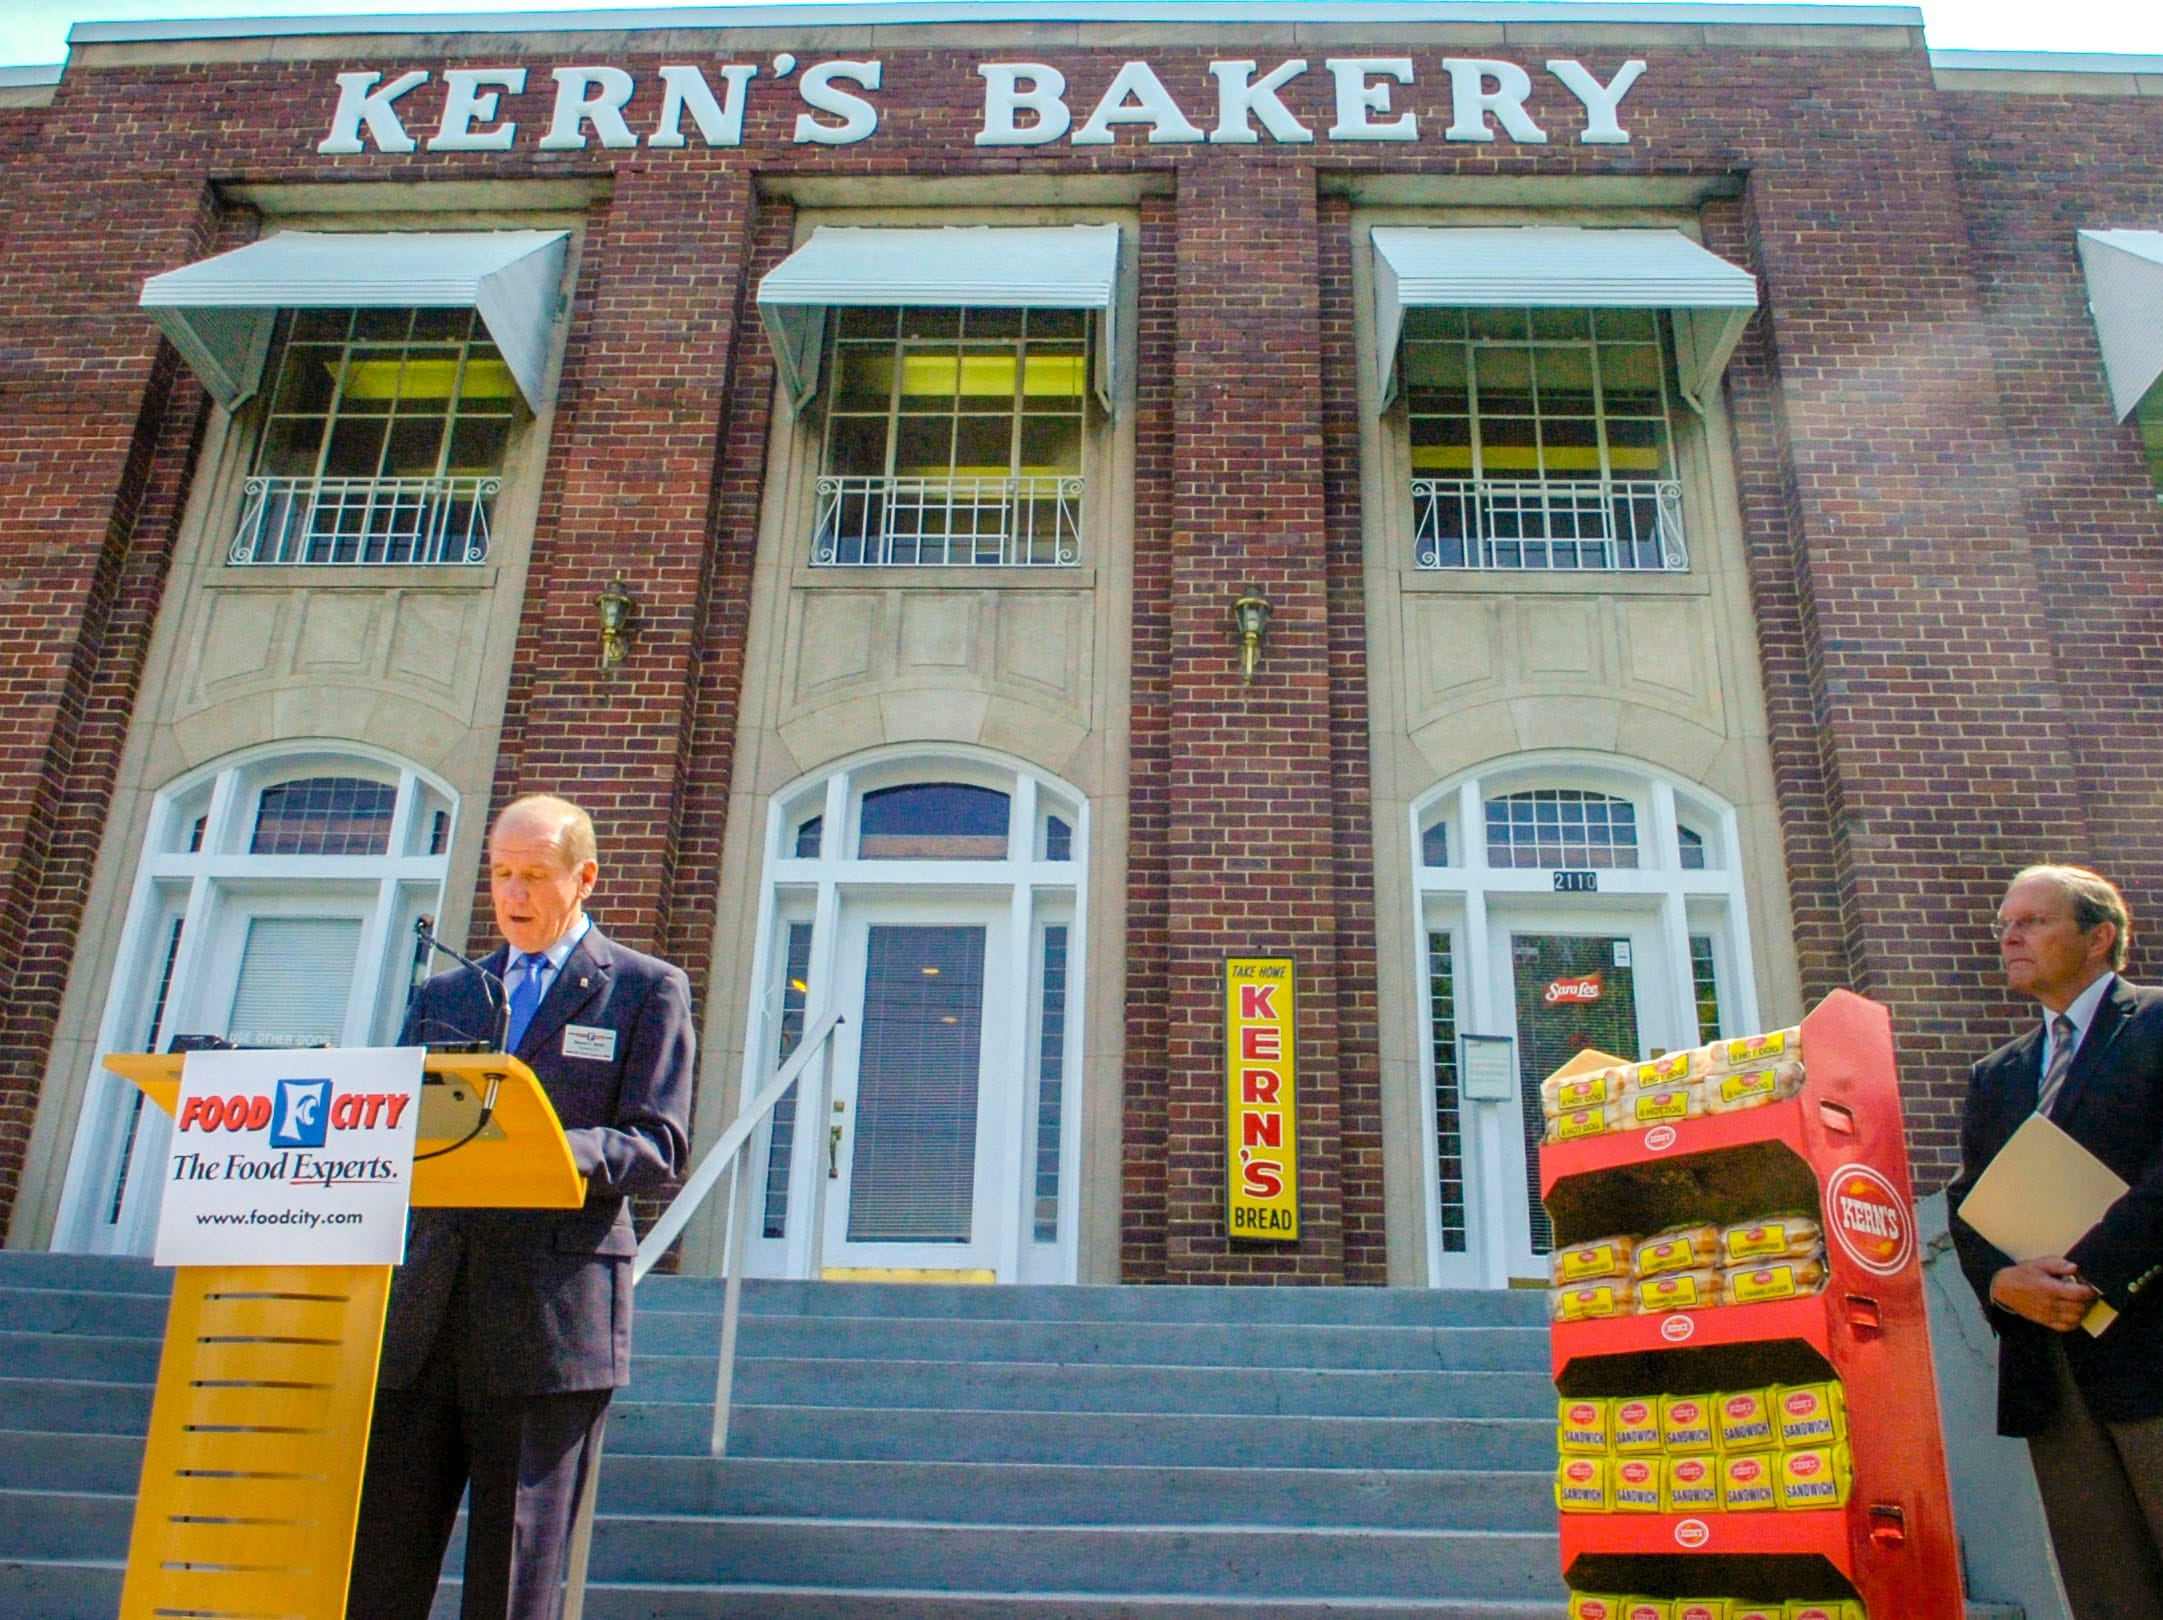 Food City President and CEO Steven Smith, left, stands in front of Sara Lee Bakeries on Chapman Highway inMay 2008 to announce that Food City will be bringing back Kern's Bread. Kern's was a family-owned operation based in Knoxville dating back 144 years. At right is Tom Hembree, Food City's senior vice president of marketing.